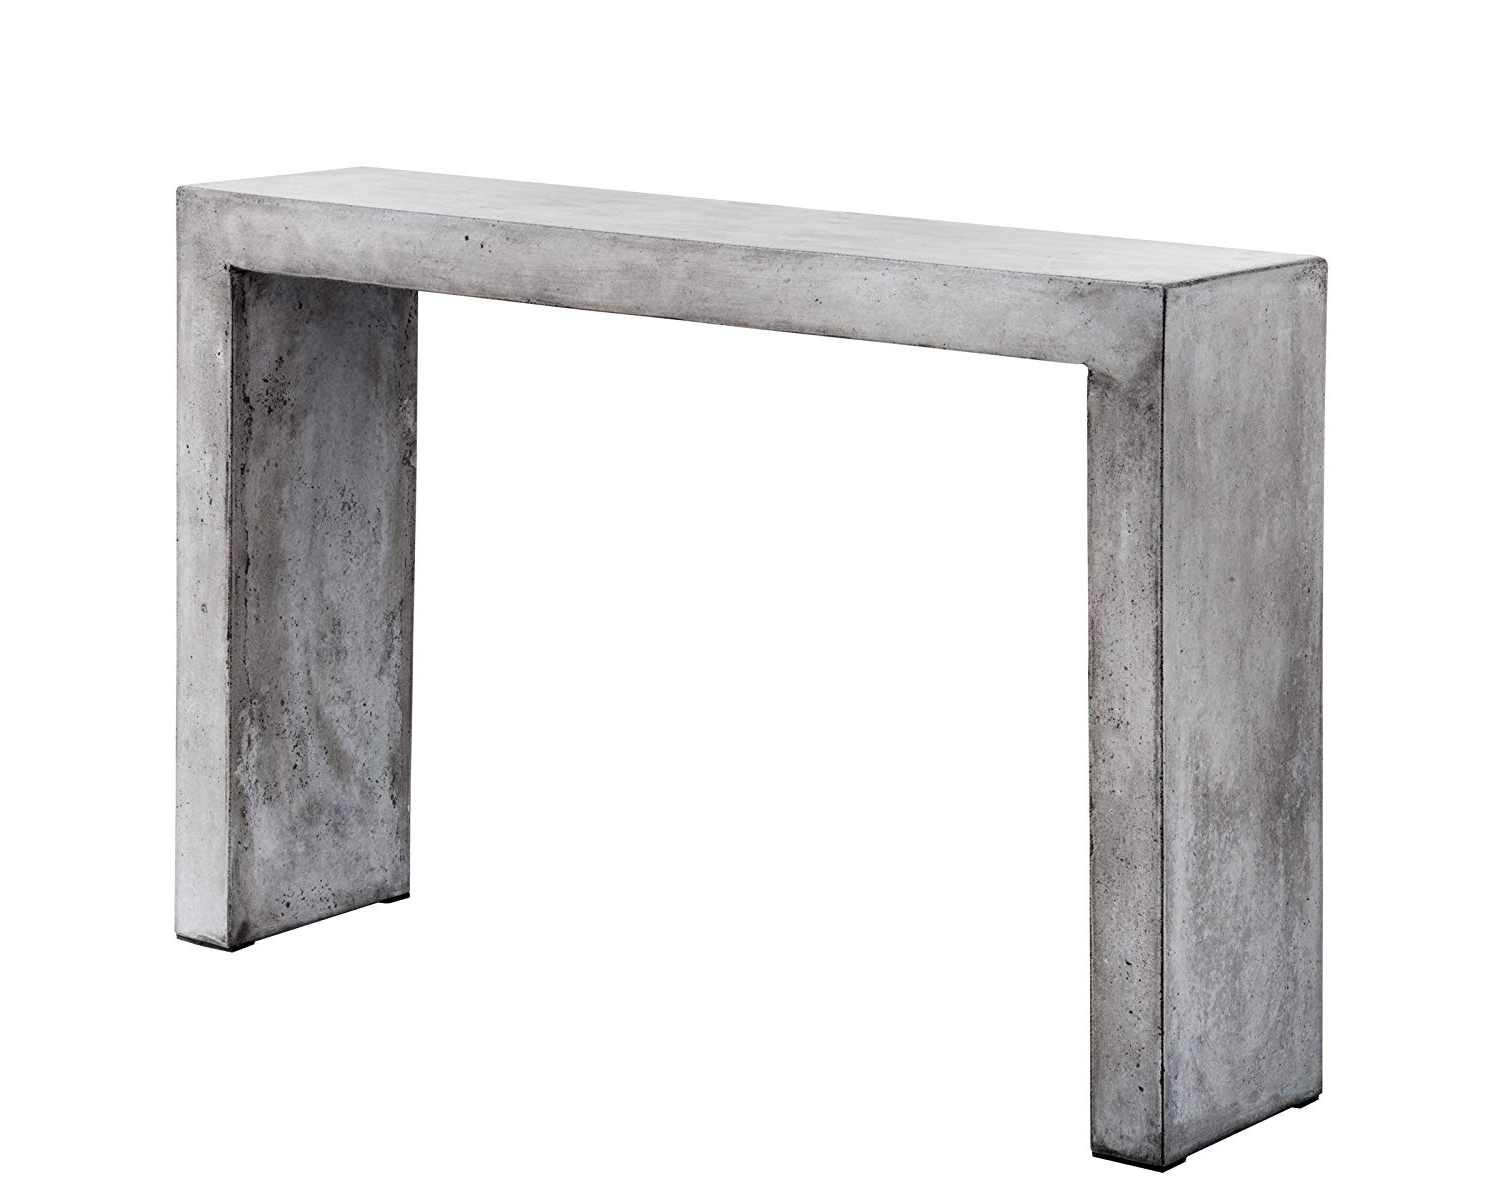 Parsons Black Marble Top & Stainless Steel Base 48X16 Console Tables Pertaining To Favorite Amazon: Sunpan Modern Axle Console Table, Grey: Kitchen & Dining (View 10 of 20)